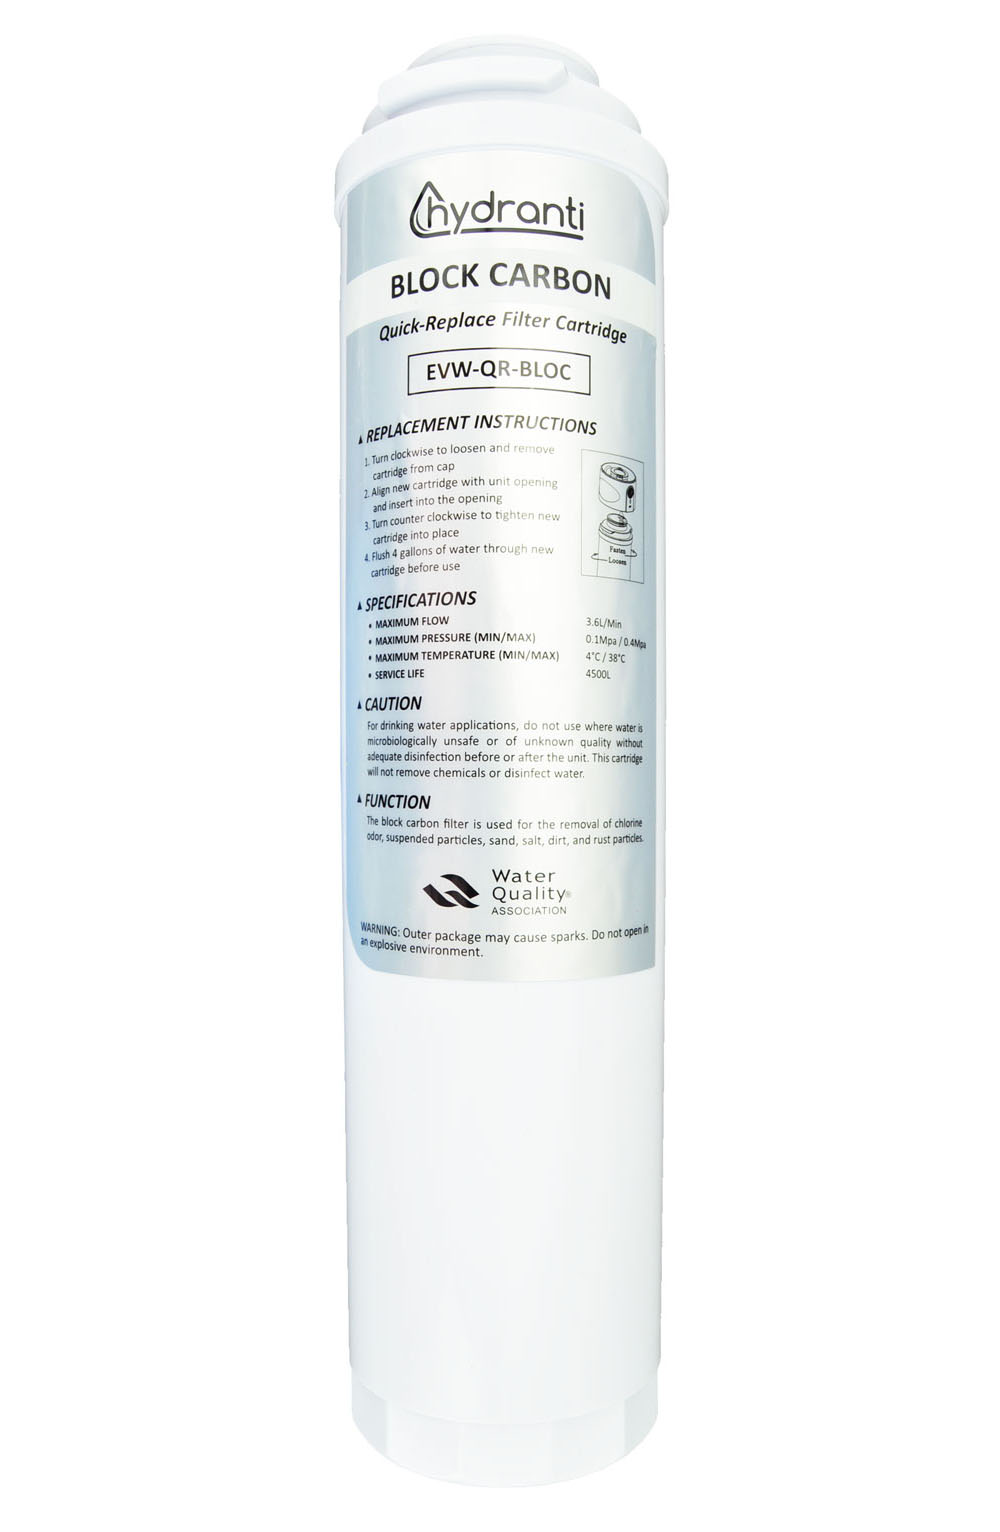 Block Carbon Filter - Block Carbon filters are designed to remove some of the chlorine from your water. This is ideal for city or county water users. The Block Carbon filter also protects your UF membrane and increases its longevity.